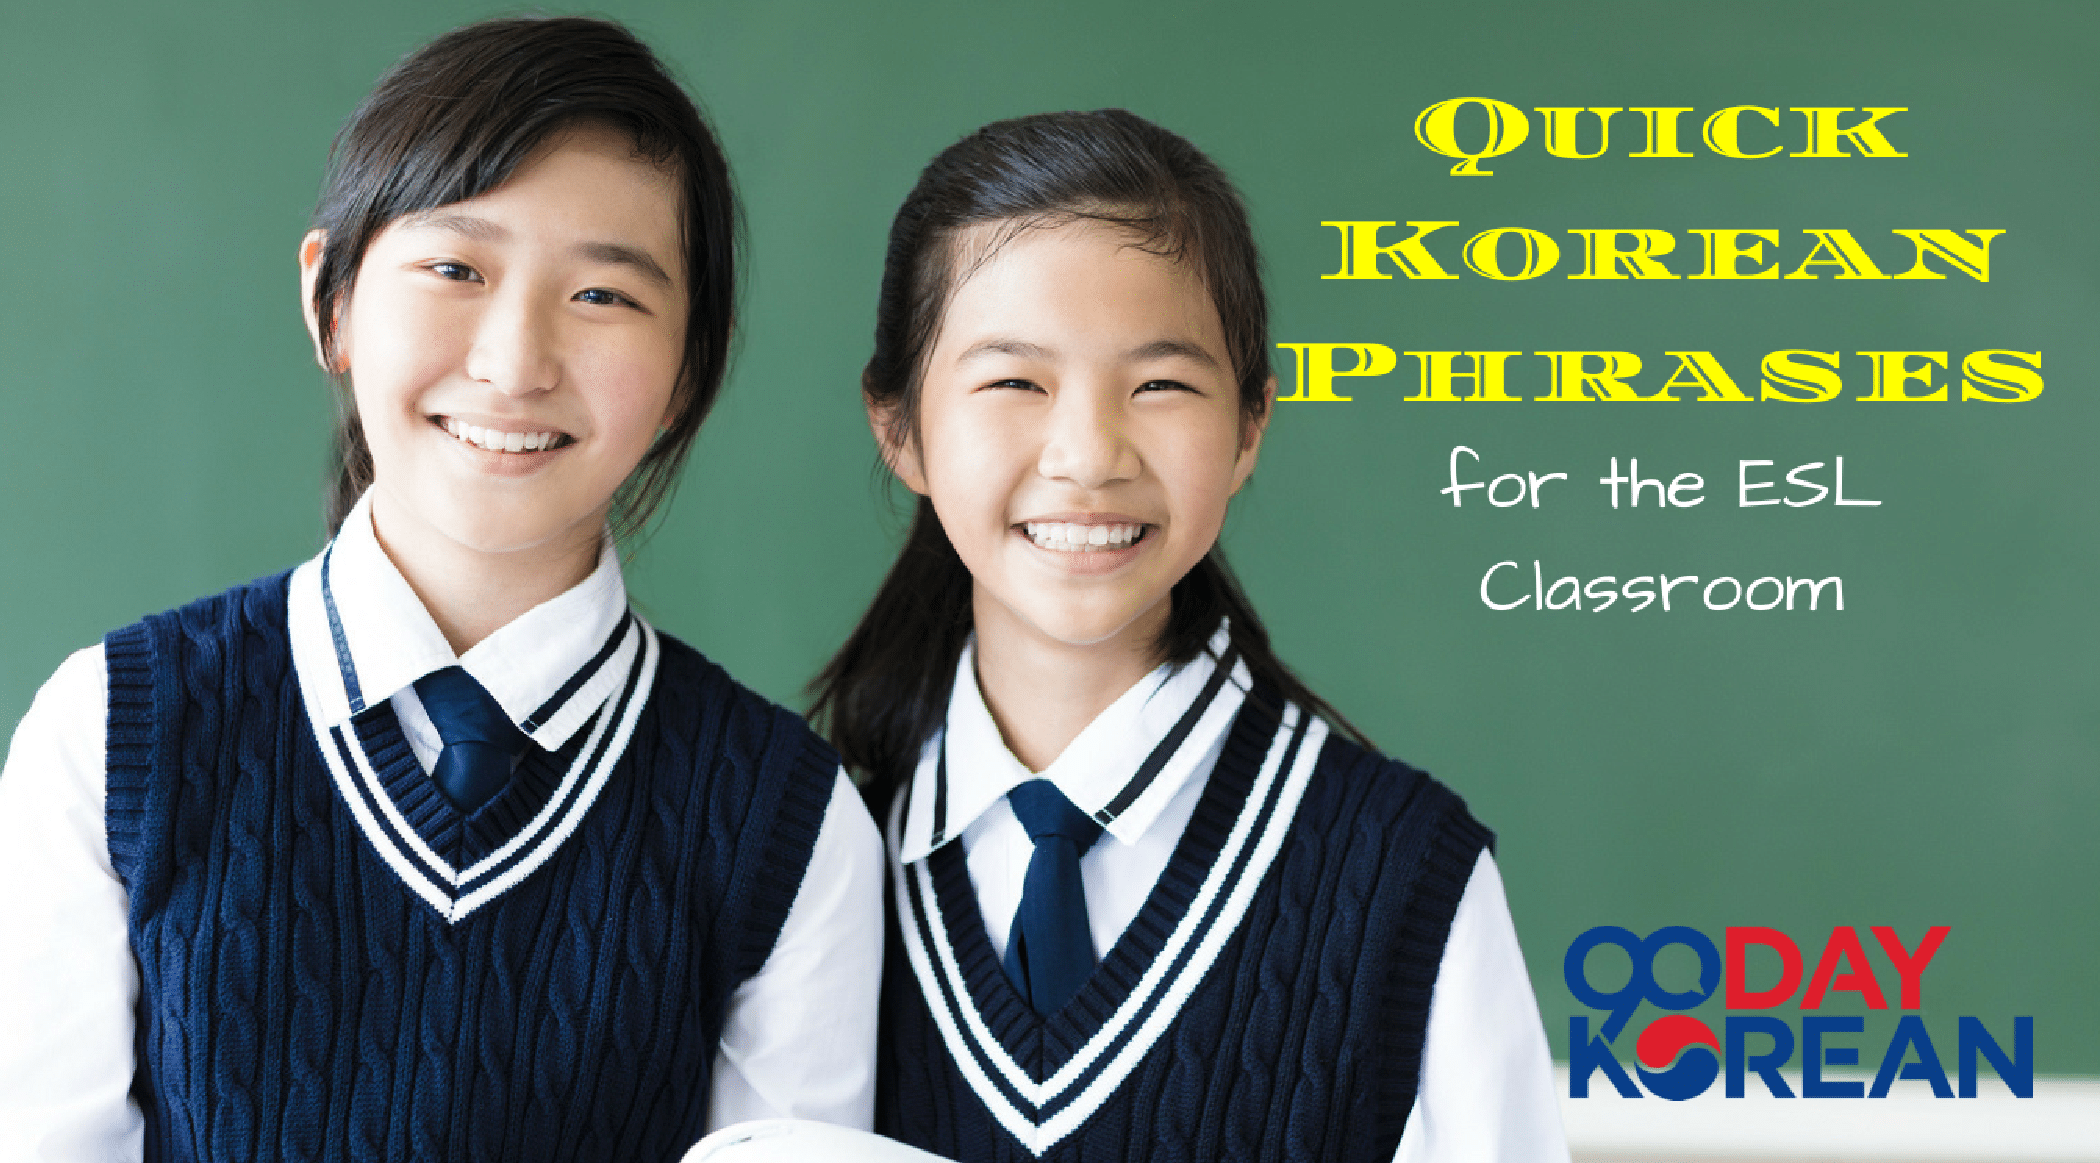 Korean students smiling in front of a chalkboard